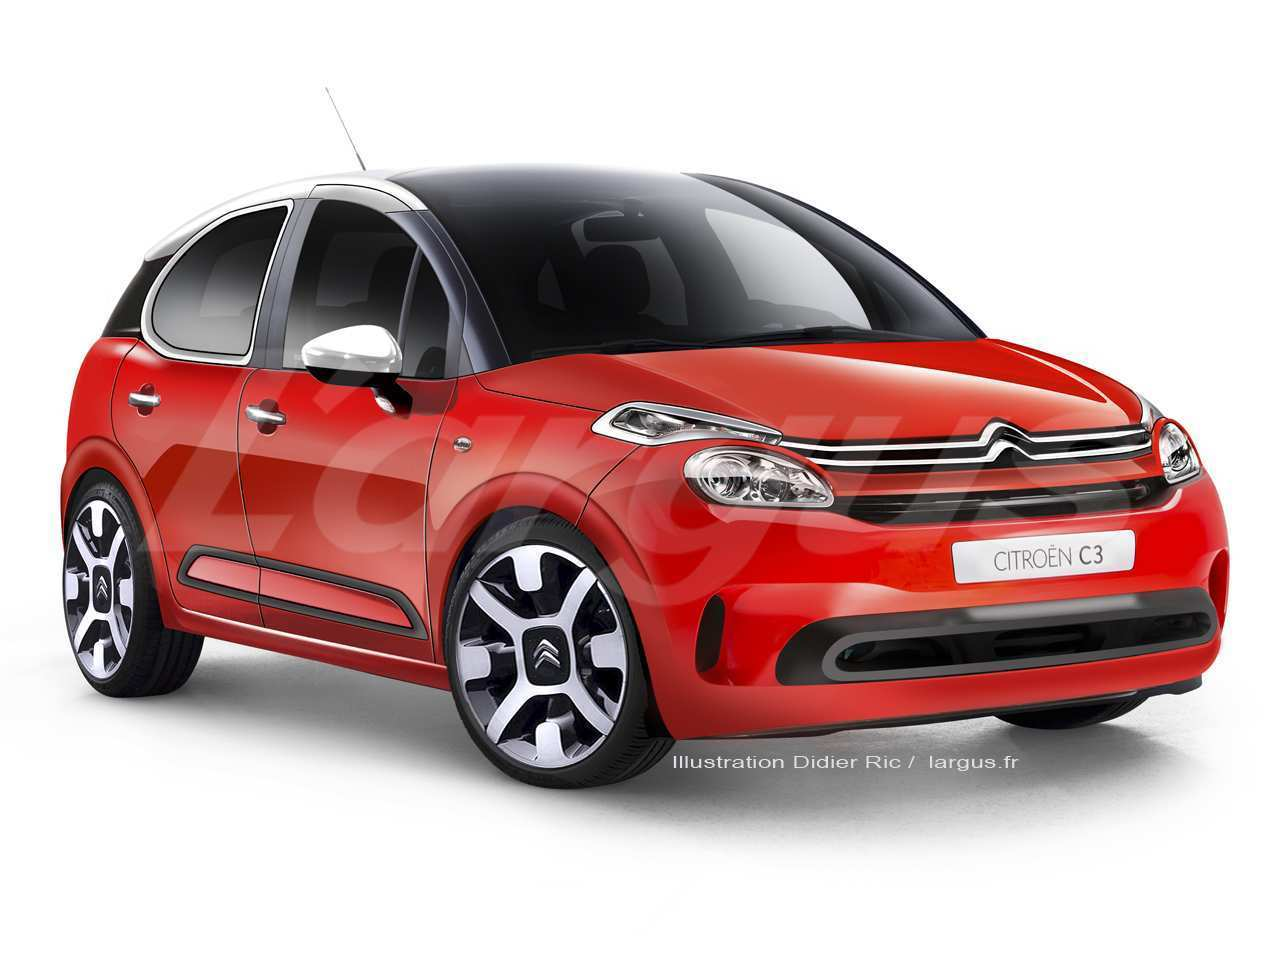 64 Concept of Citroen Ds3 2020 Specs and Review by Citroen Ds3 2020